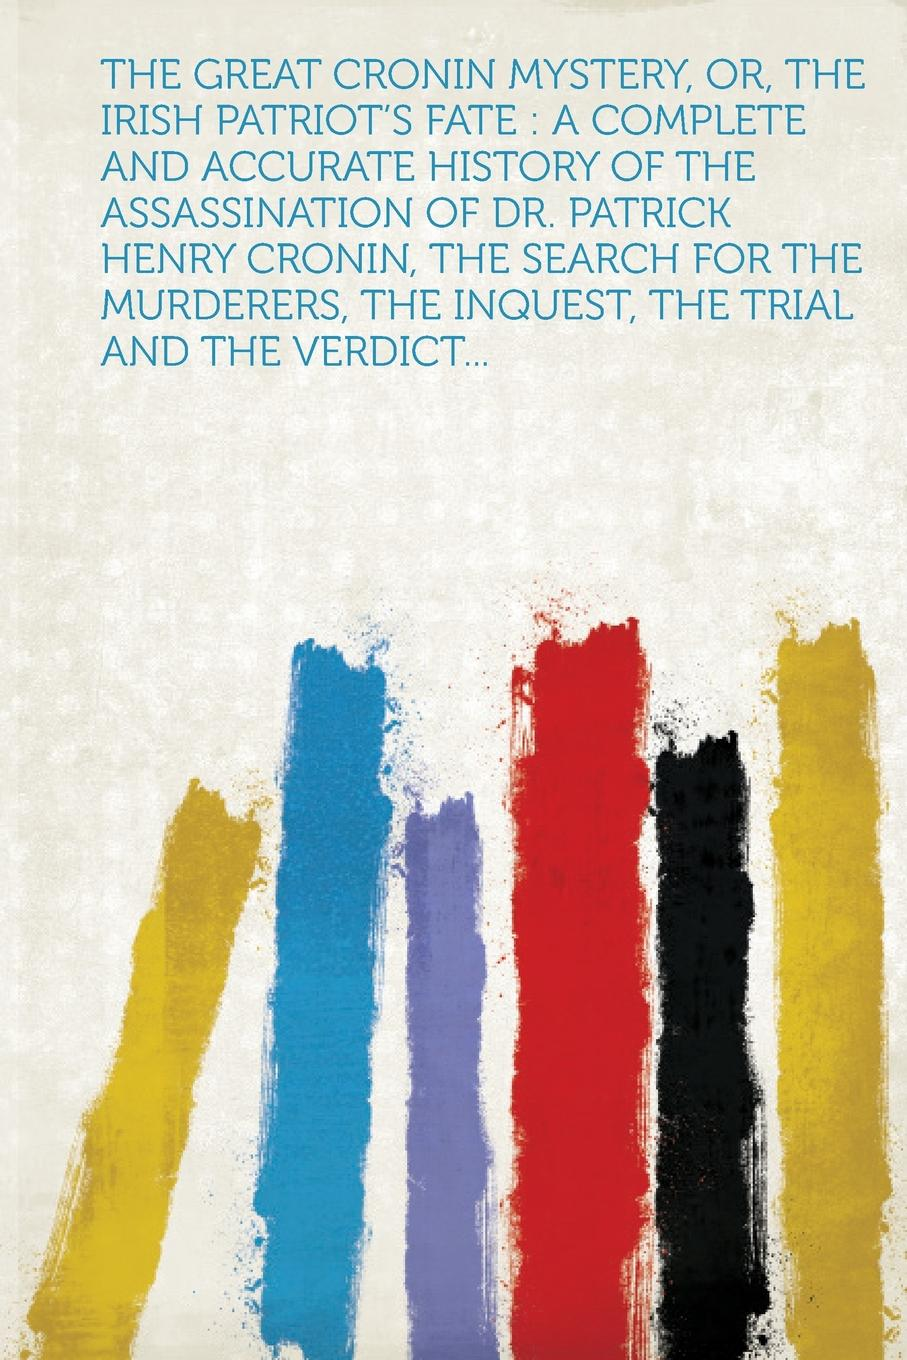 The Great Cronin Mystery, Or, the Irish Patriot.s Fate. A Complete and Accurate History of the Assassination of Dr. Patrick Henry Cronin, the Search F mike cronin irish history for dummies